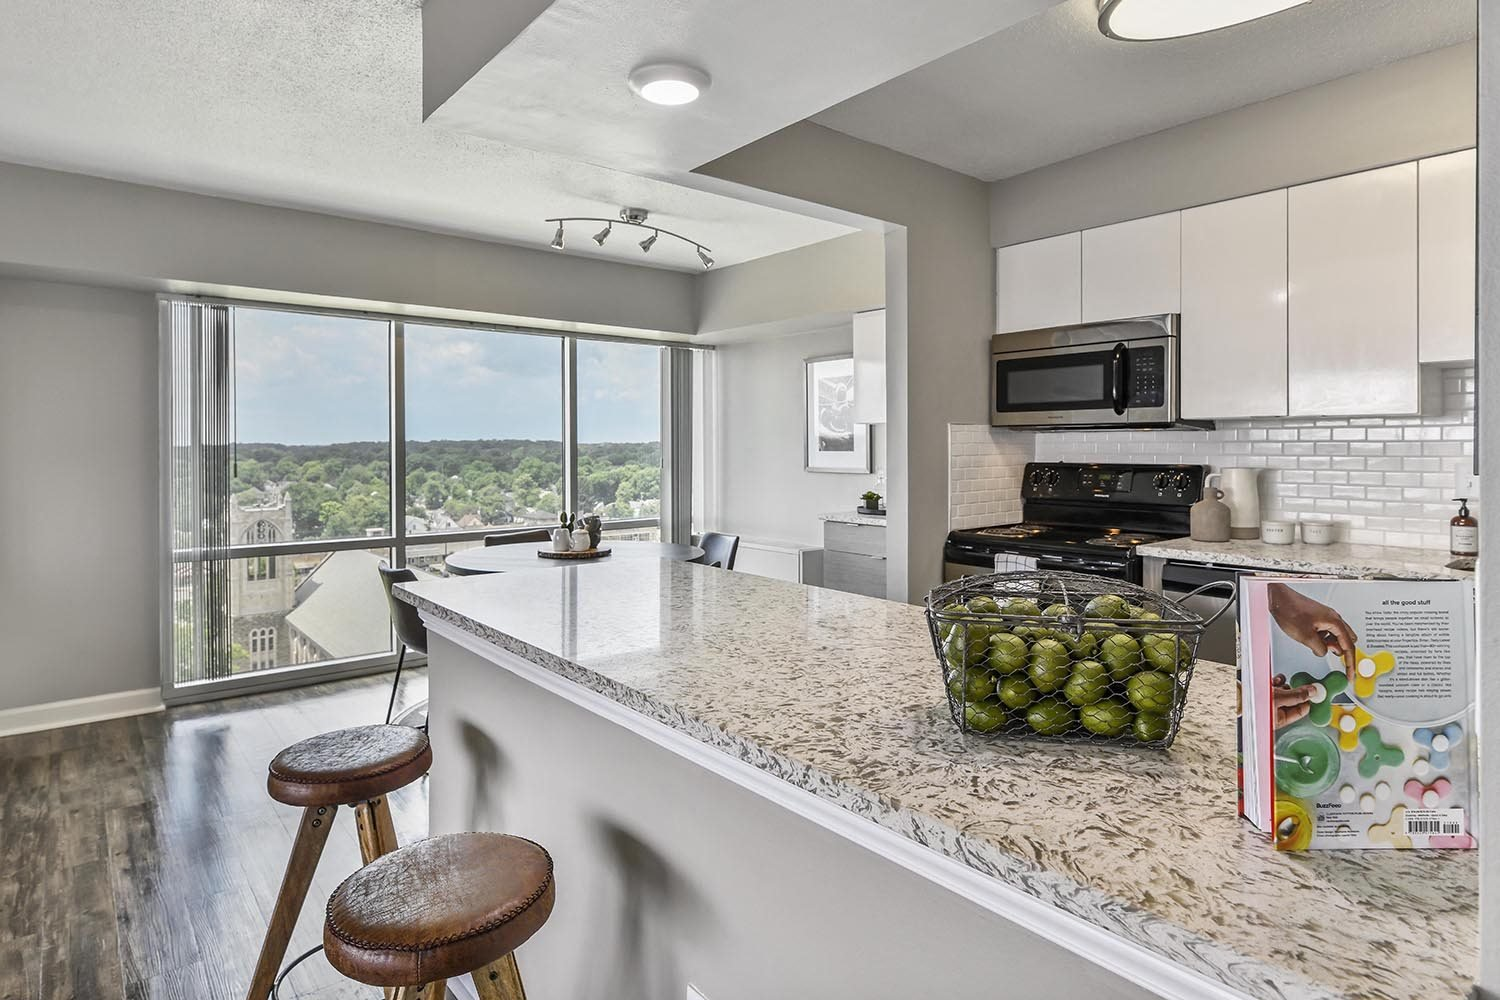 Designer Granite Countertops at CityView on Meridian, Indianapolis, IN,46208